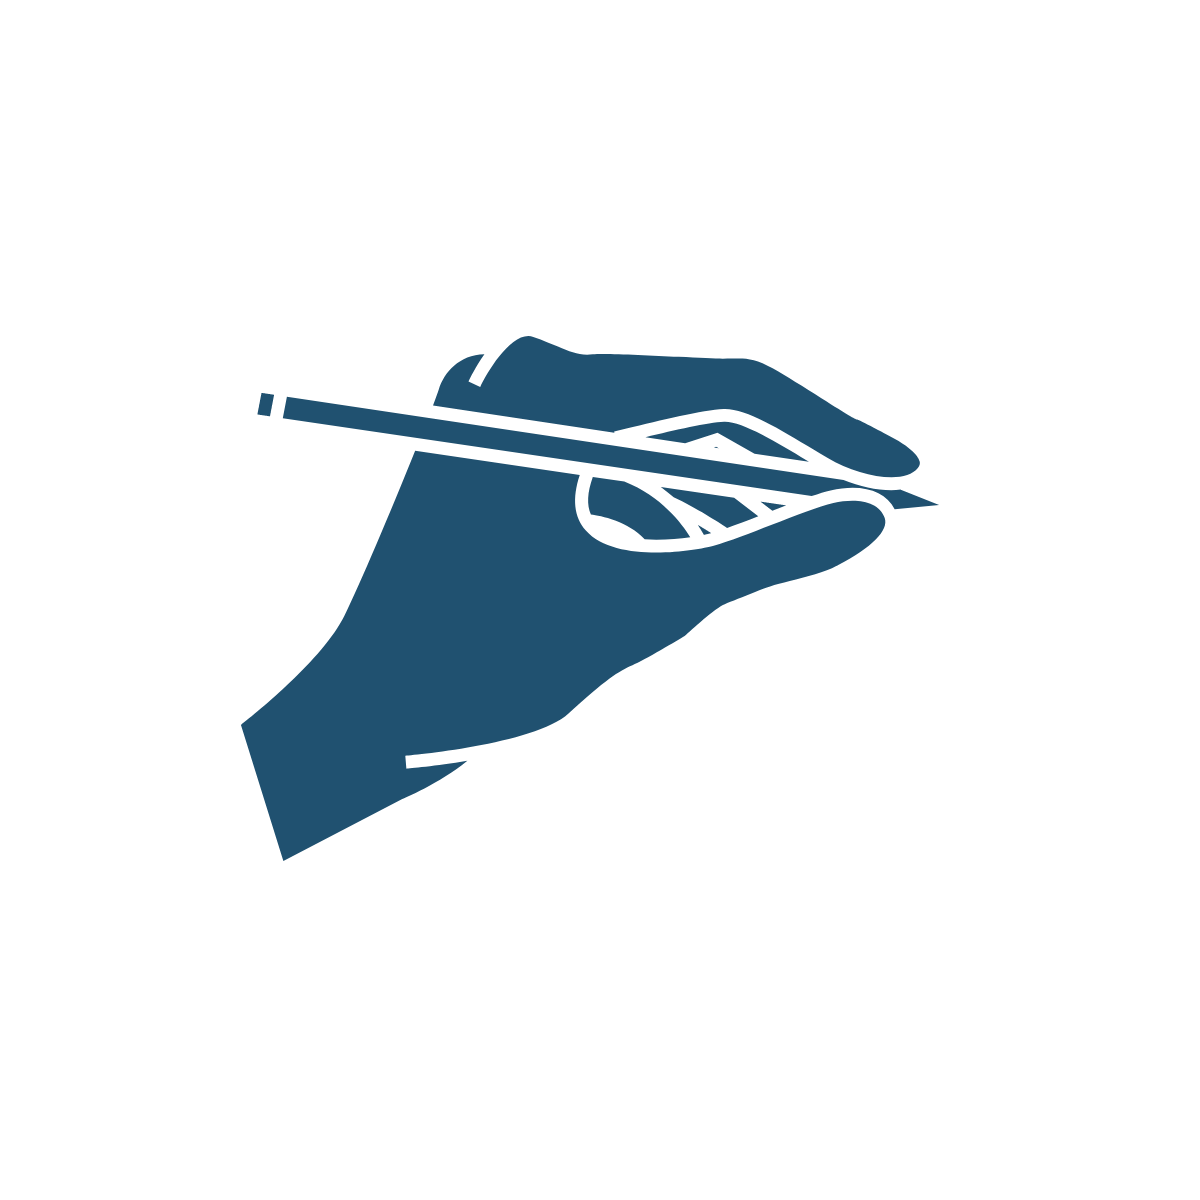 icon-drawing-hands